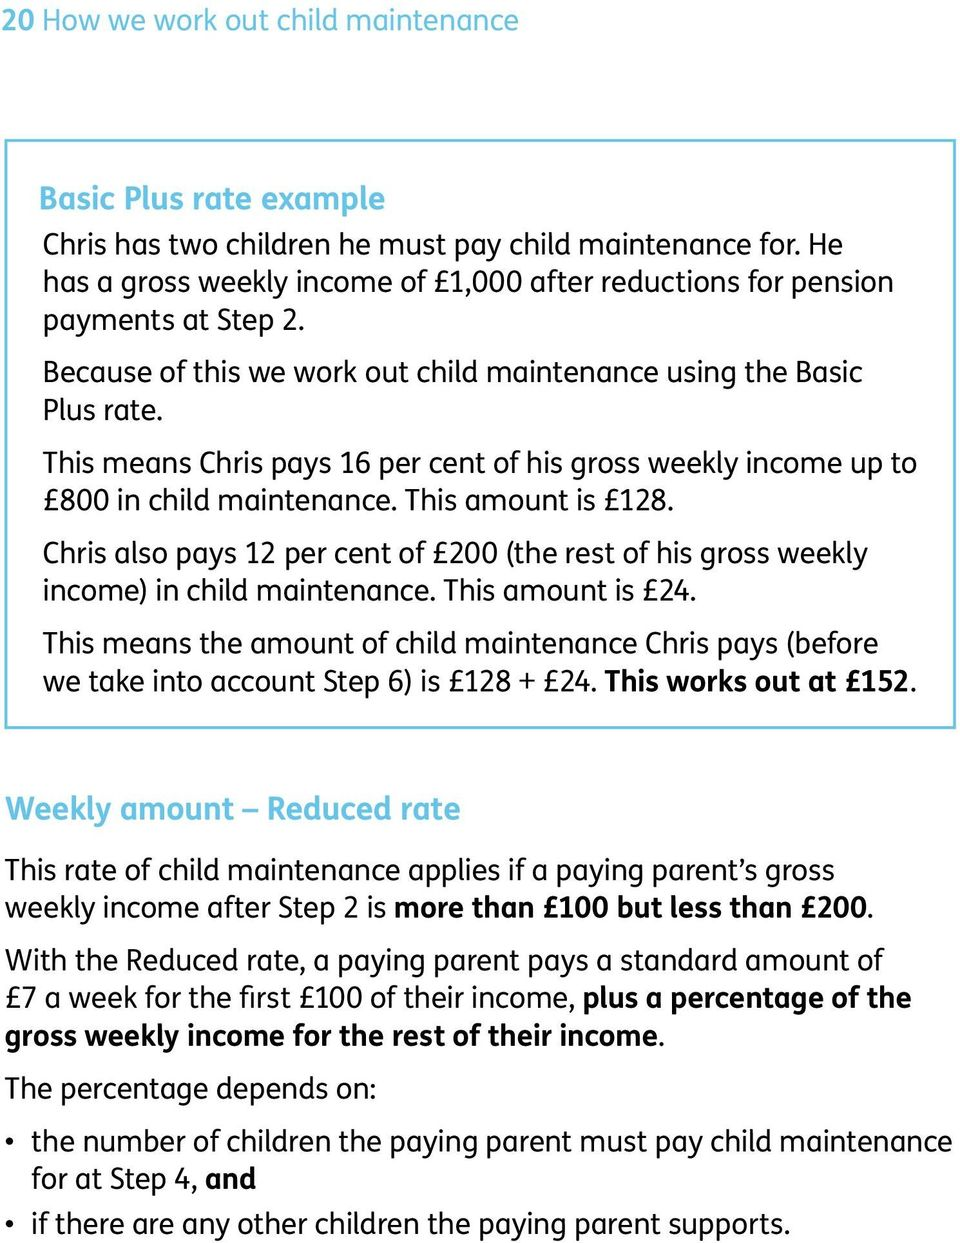 This means Chris pays 16 per cent of his gross weekly income up to 800 in child maintenance. This amount is 128.